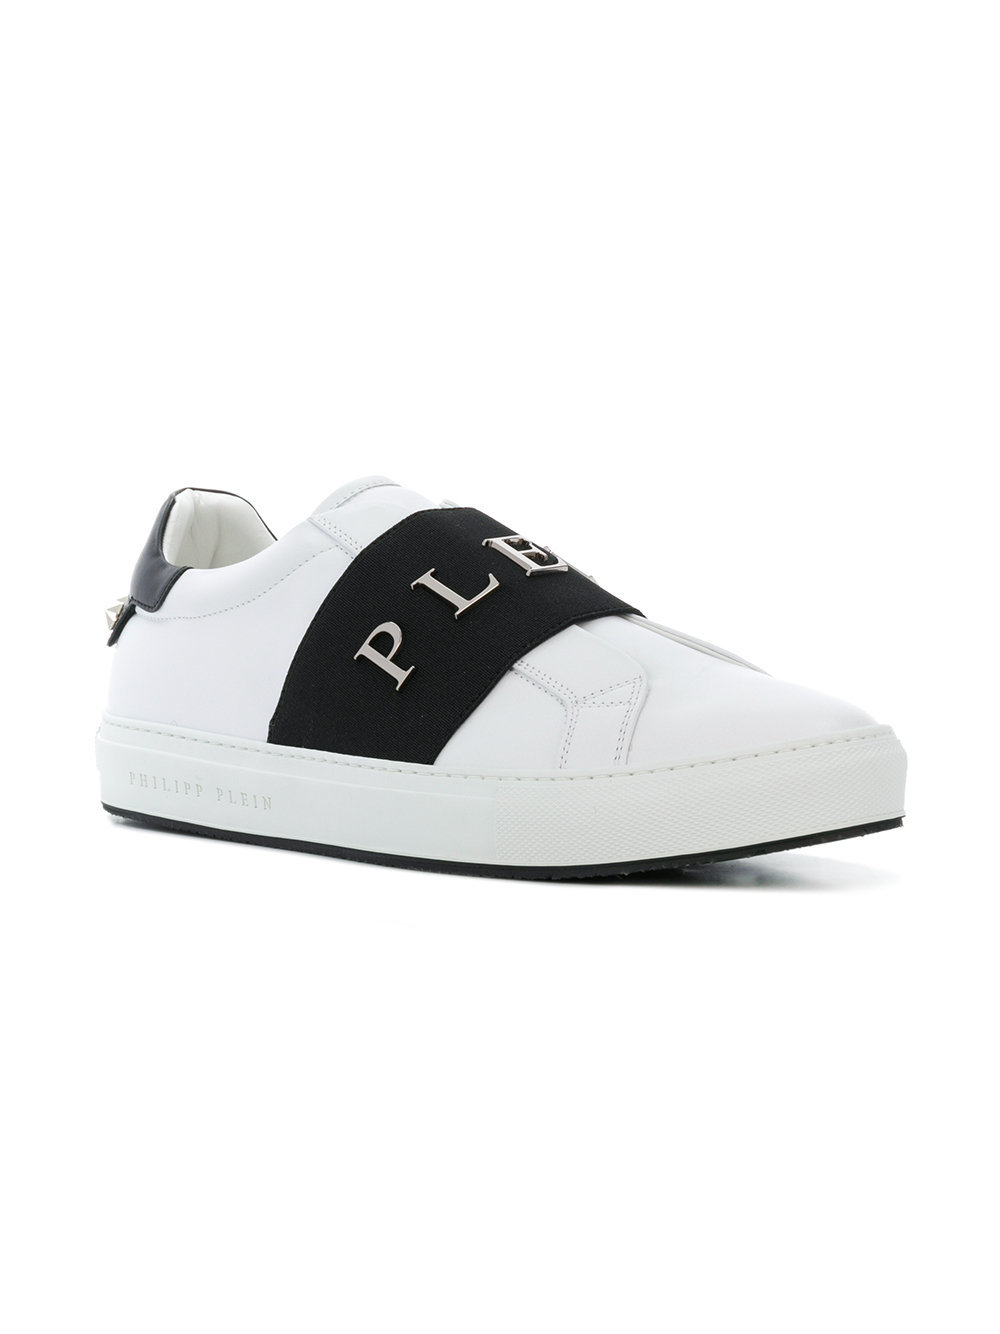 amp; To Buy Where Wear Plein Low Logo Top Philipp Sneakers How Front S40Ww